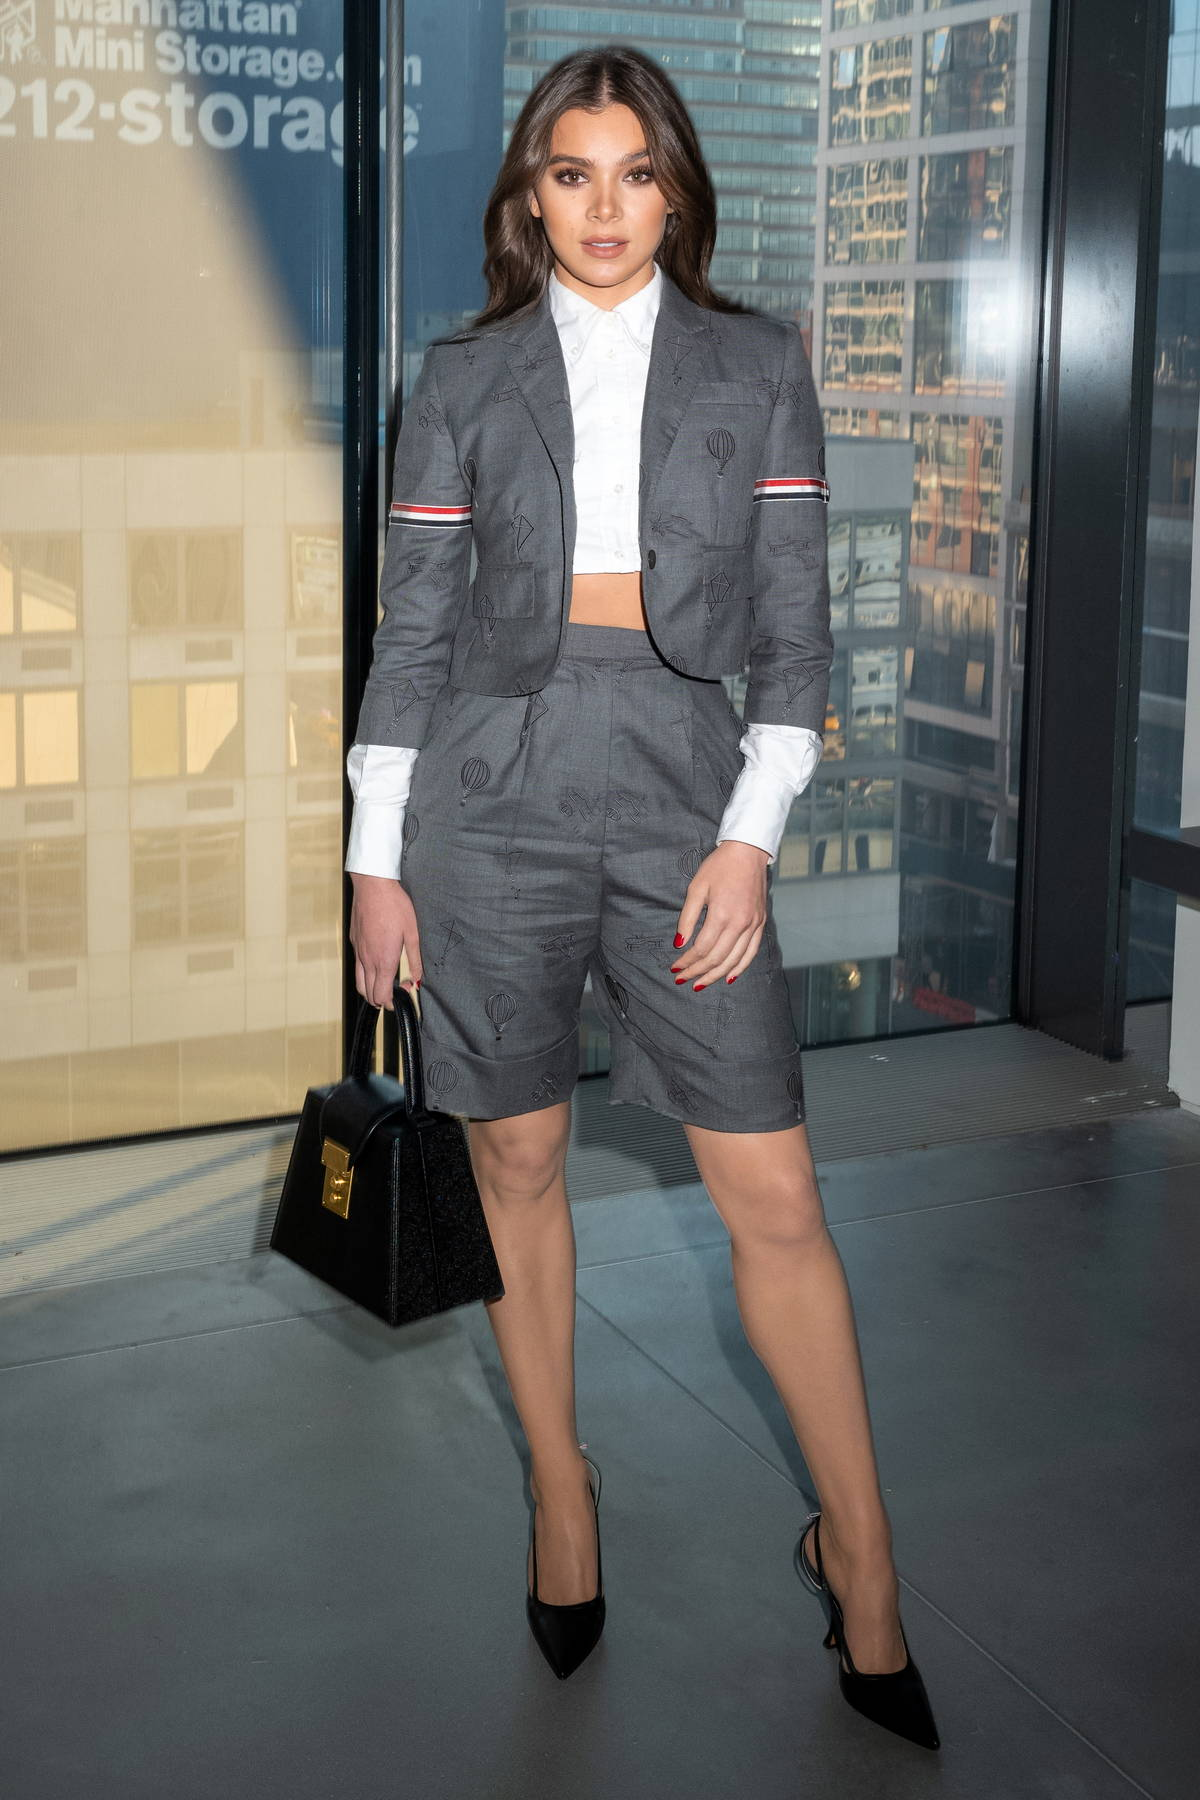 Hailee Steinfeld attends the Thom Browne fashion show during New York Fashion Week in New York City